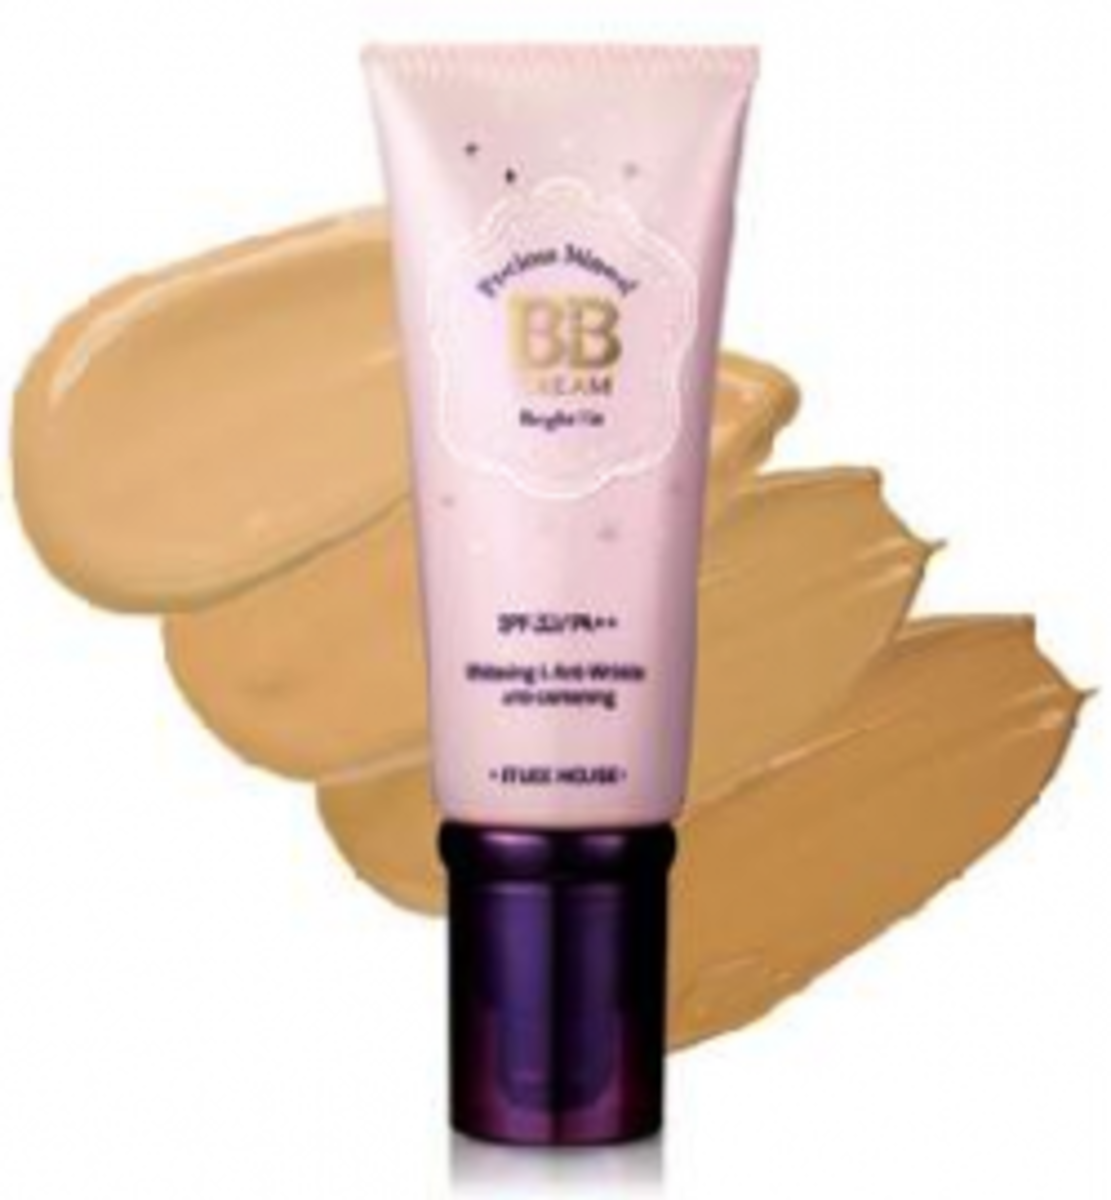 Etude House BB Cream - Precious Mineral